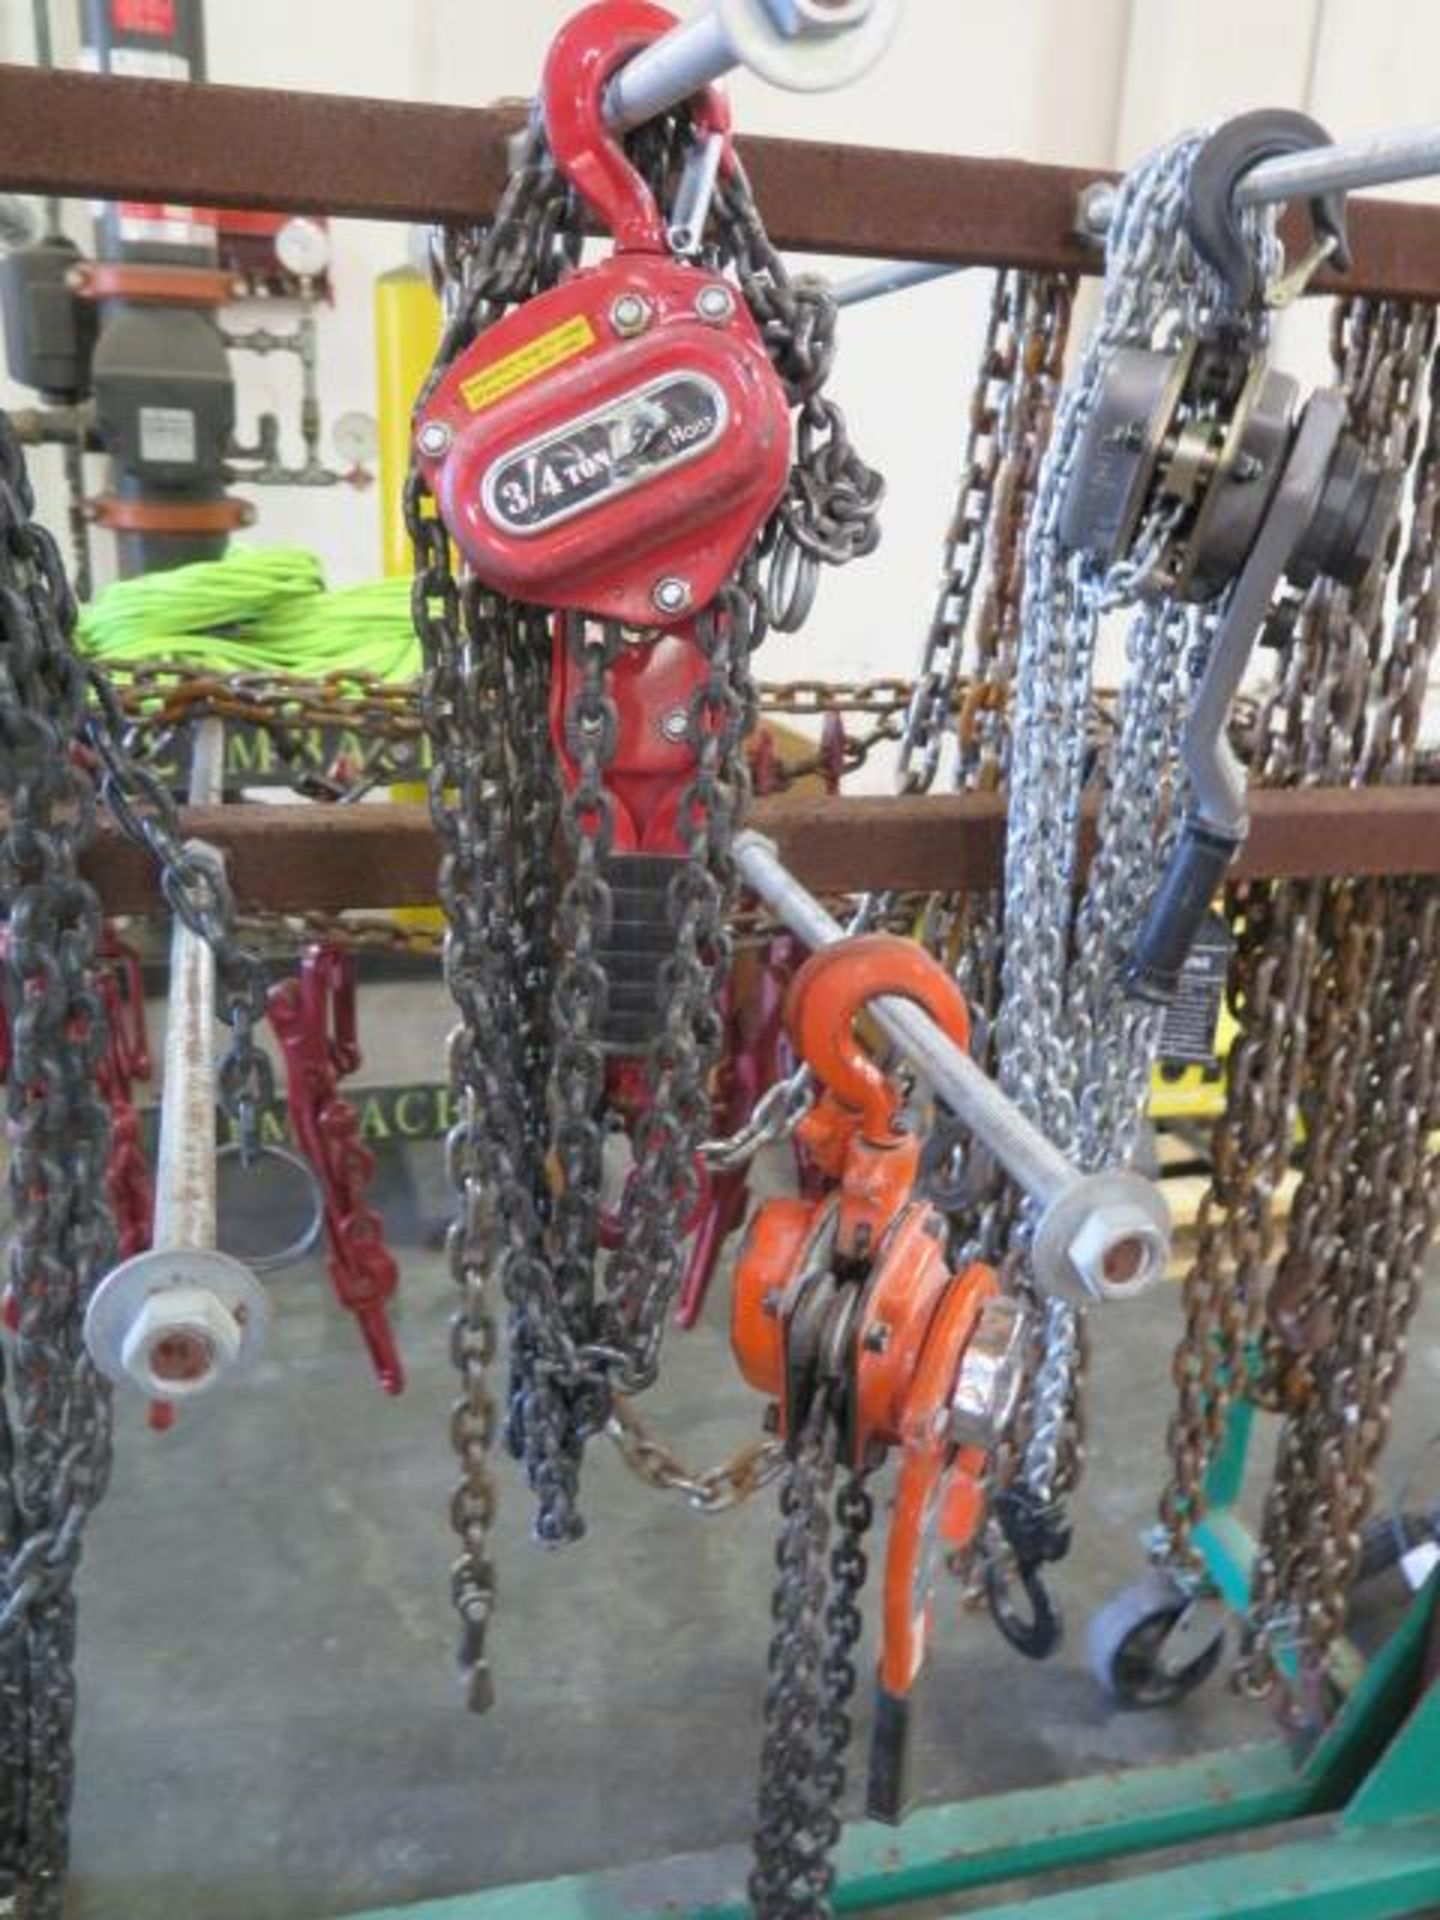 Chain Come-Alongs (4), Chain Tensioners (6) Chain and Cart (SOLD AS-IS - NO WARRANTY) - Image 3 of 11